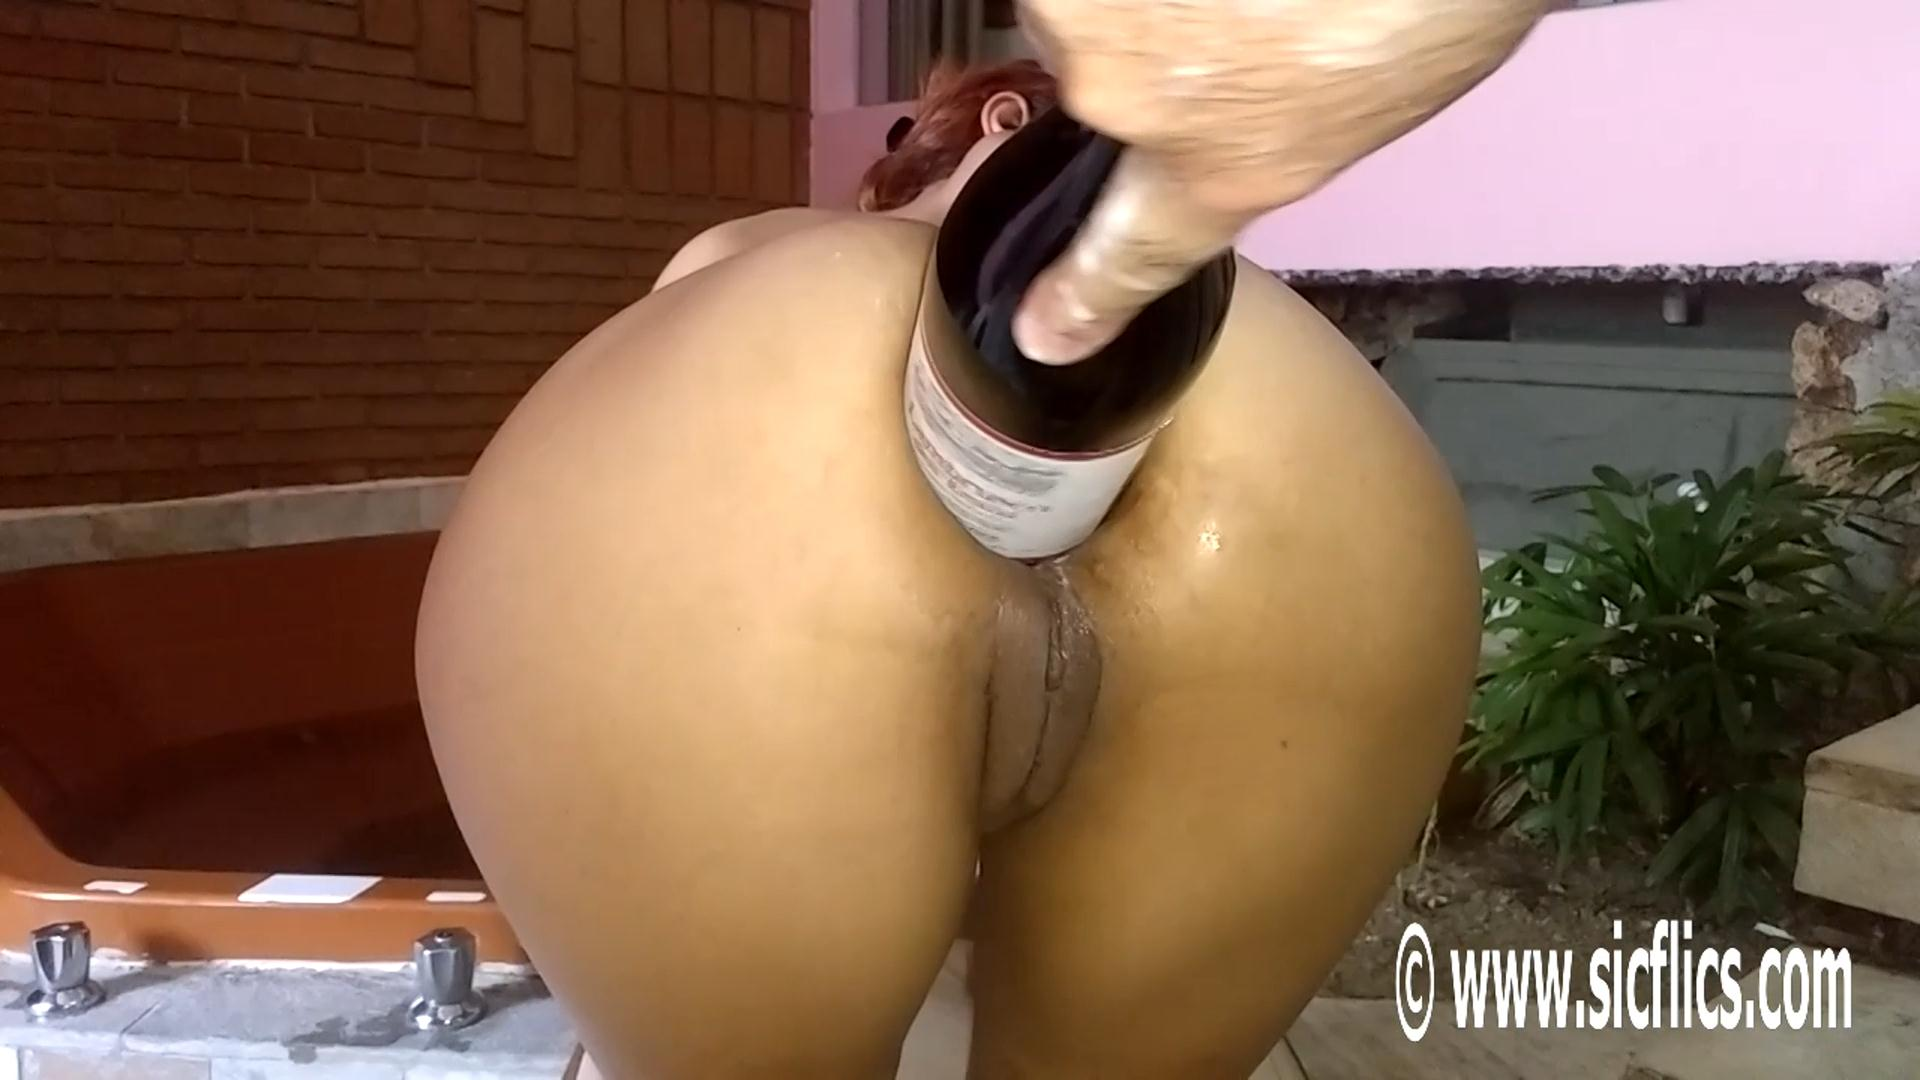 champagne bottle insertion Champagne bottle anal fuck – Queen Maria